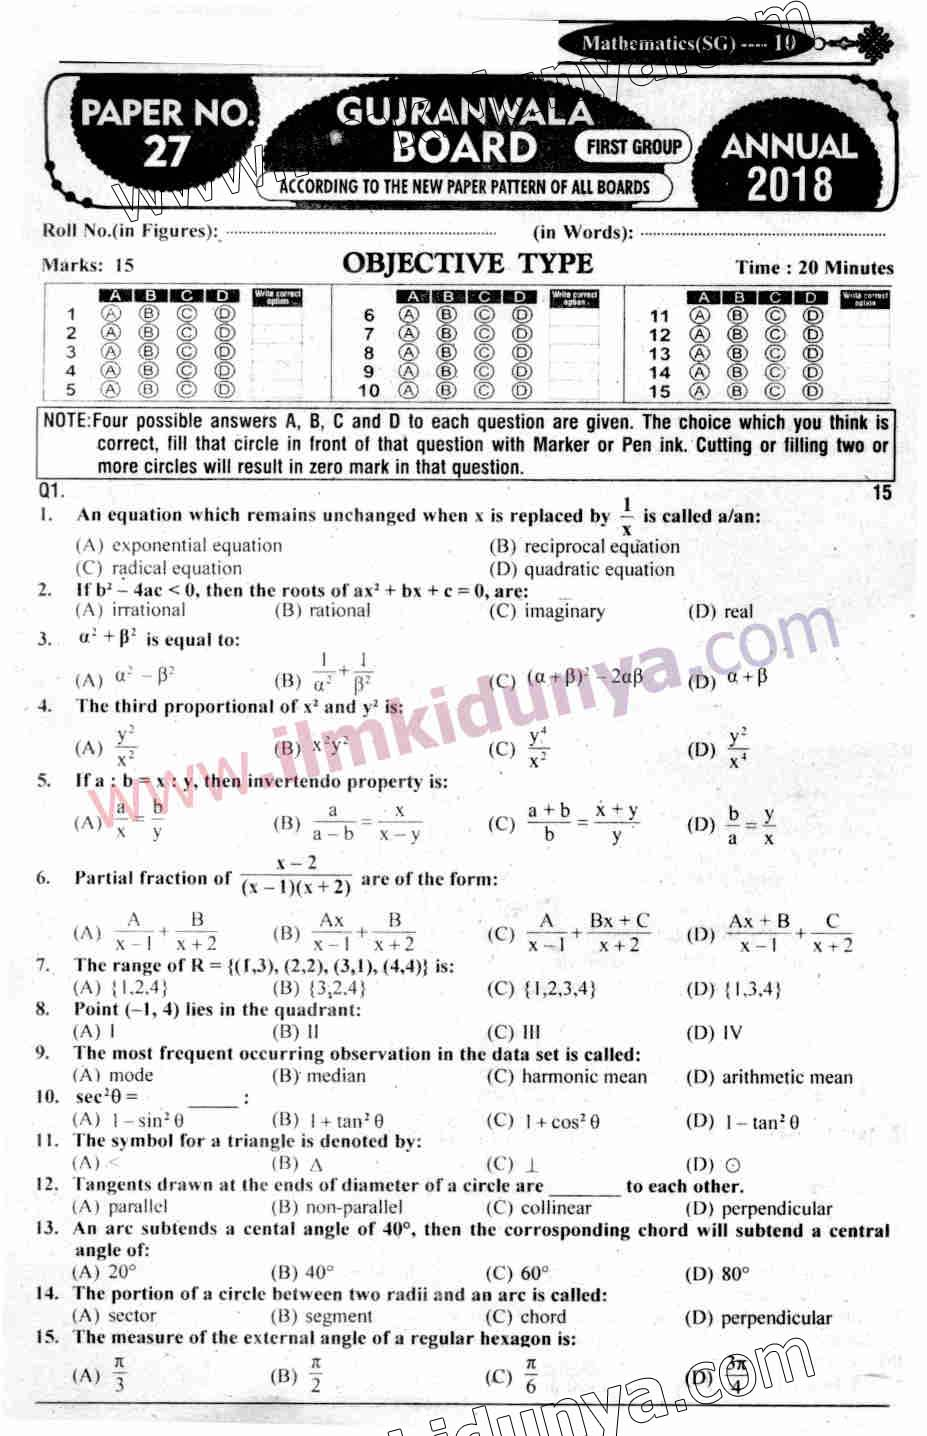 Past Papers 2018 Gujranwala Board 10th Class Mathematics